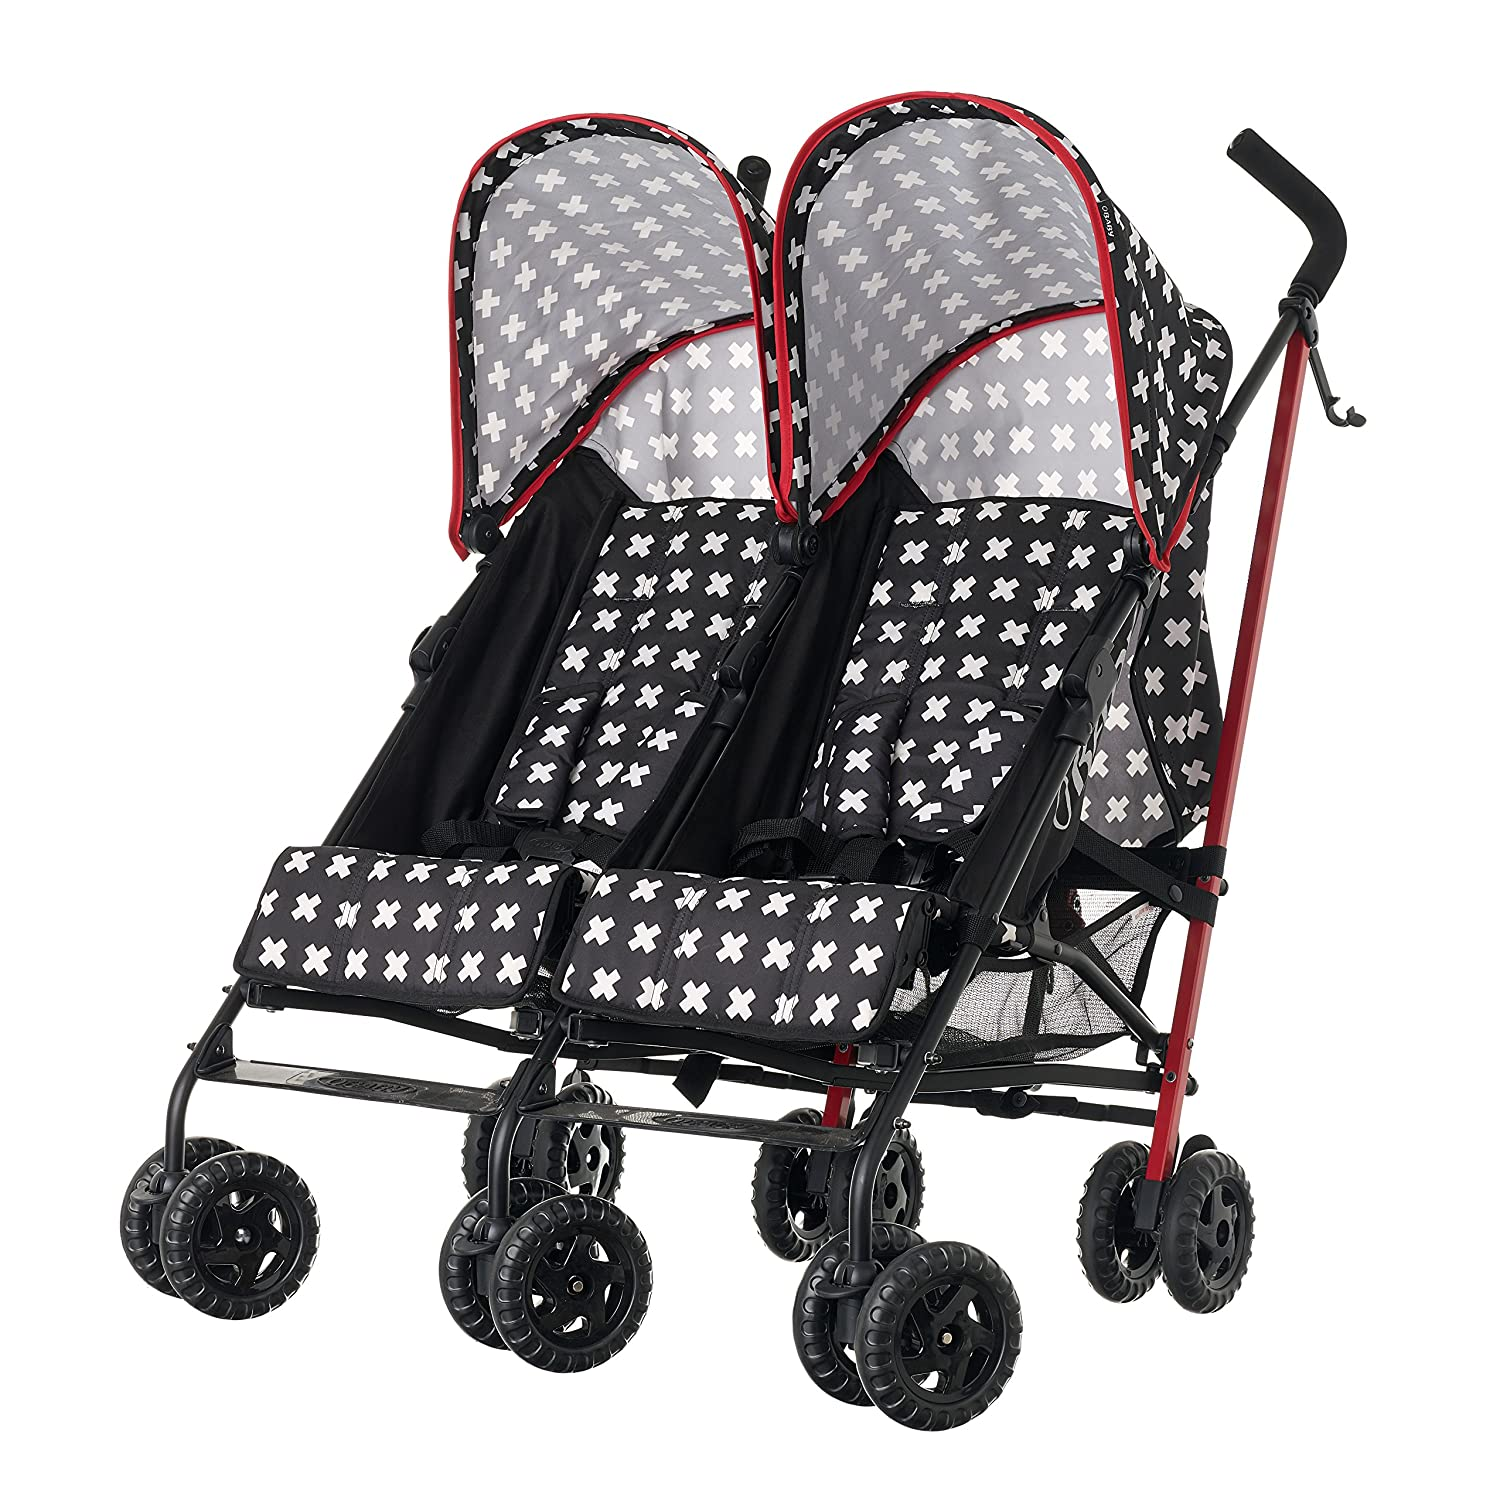 Obaby Apollo Twin Stroller, Crossfire Kims Baby Equipment Co Ltd 13OB1519